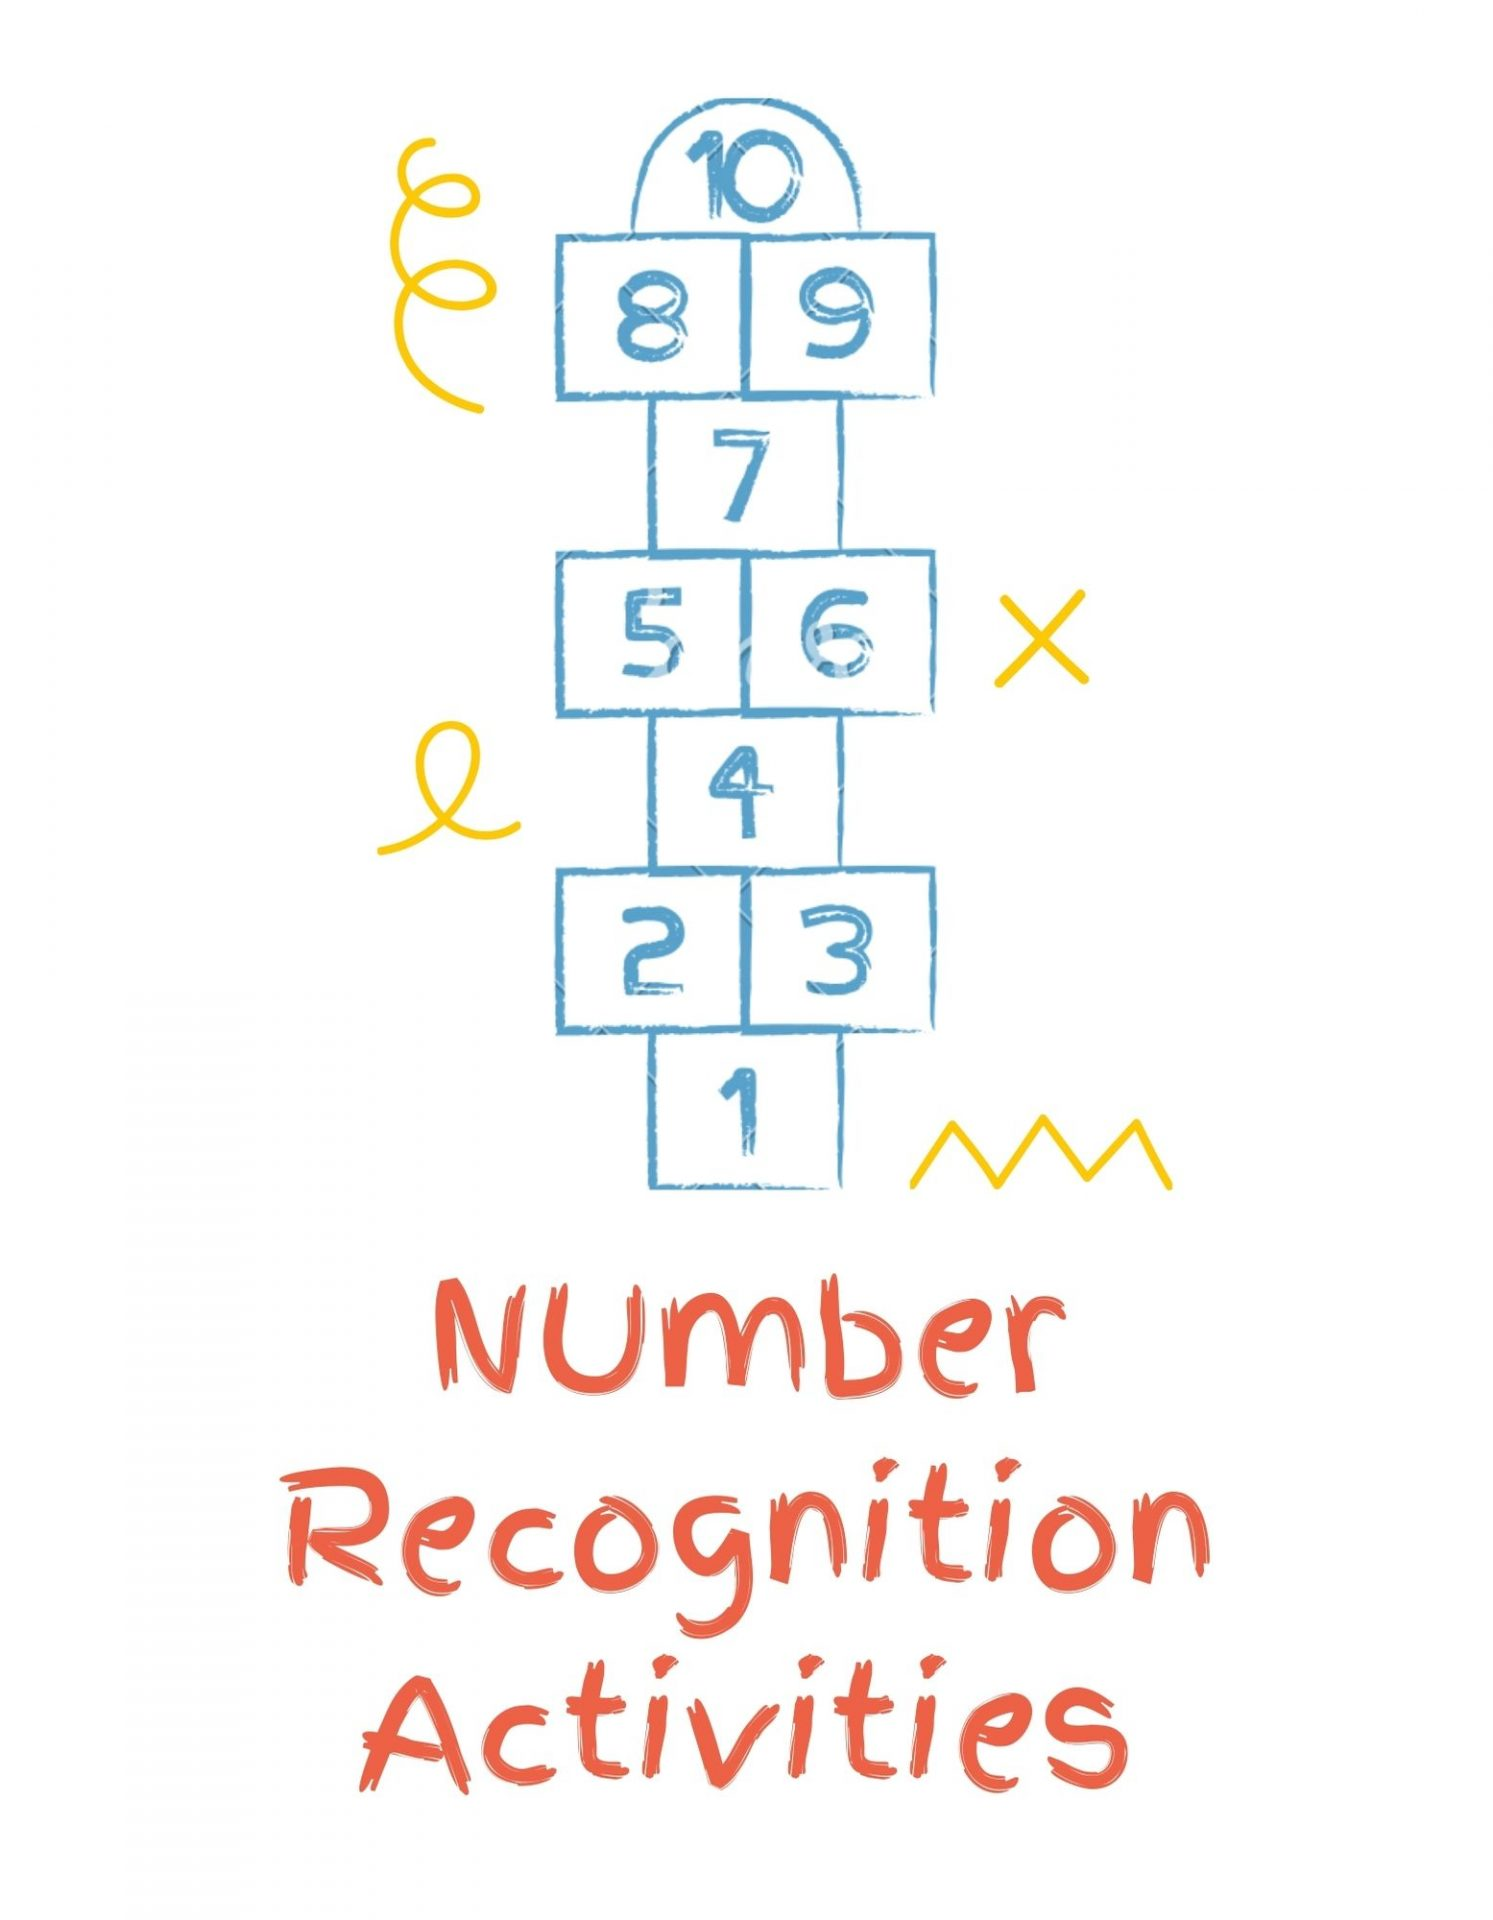 List of top 10 number recognition activities